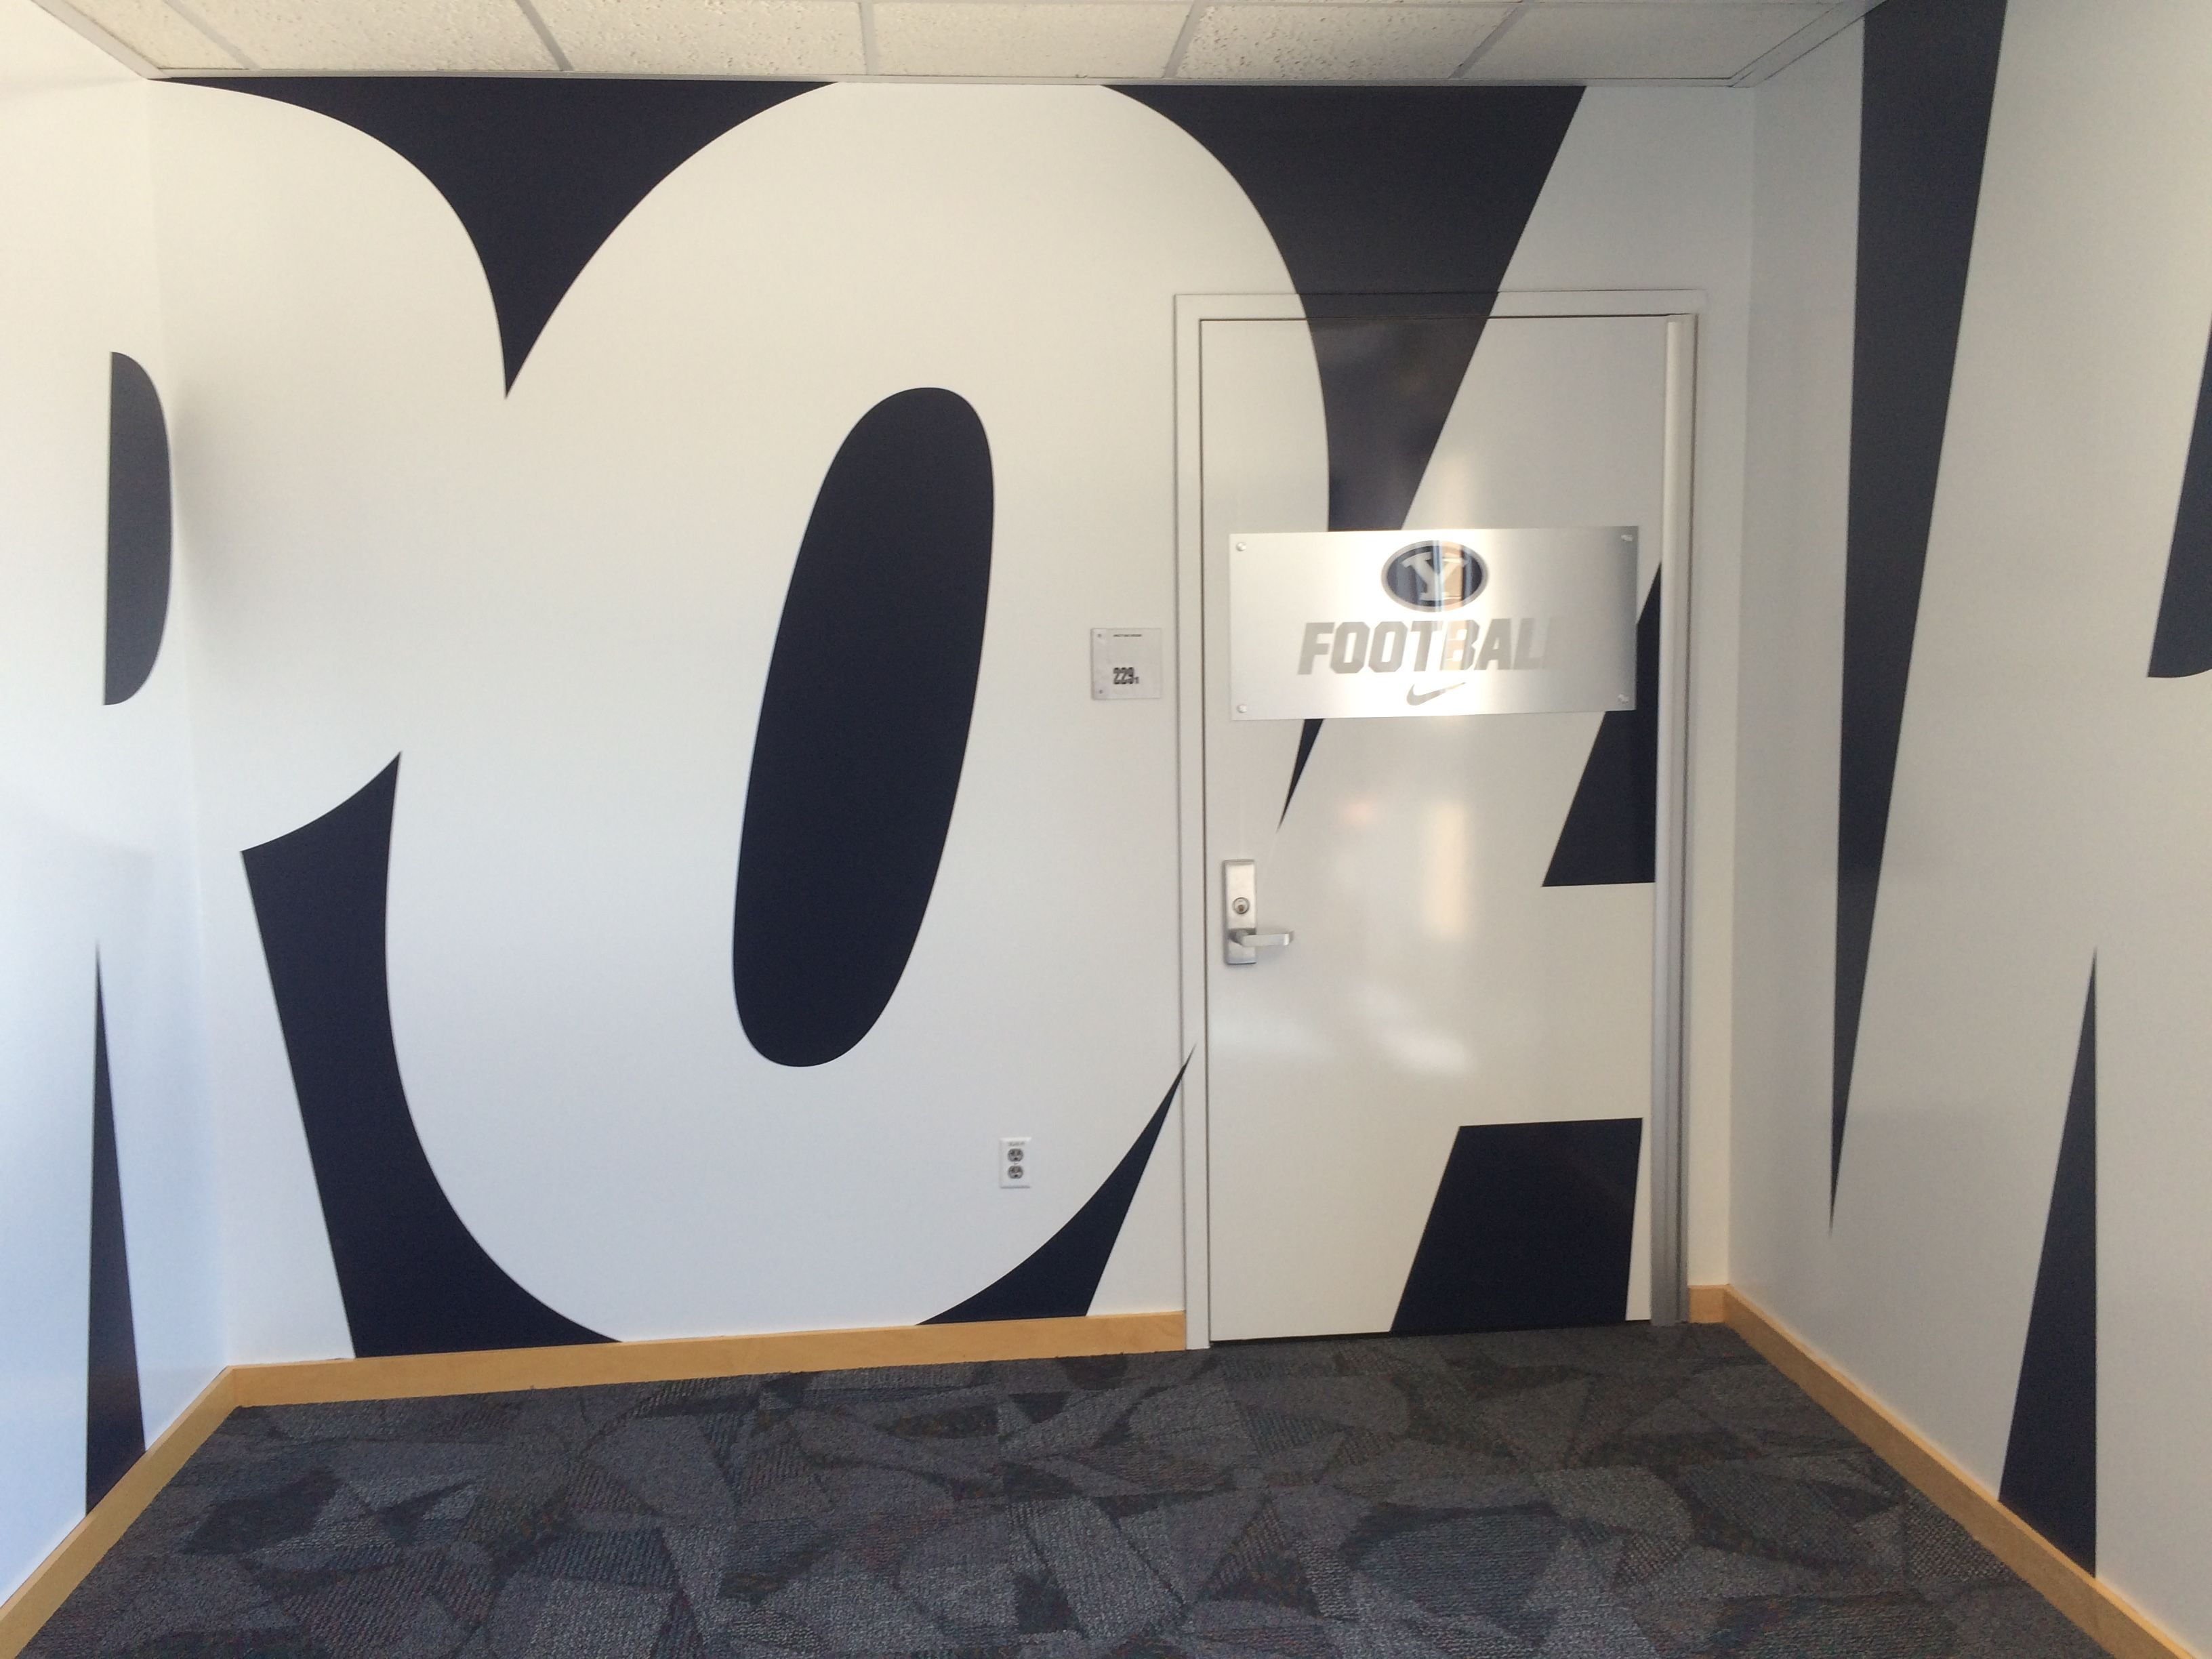 Entrance To Byu Football Team Room By Dave Broberg Wall Design